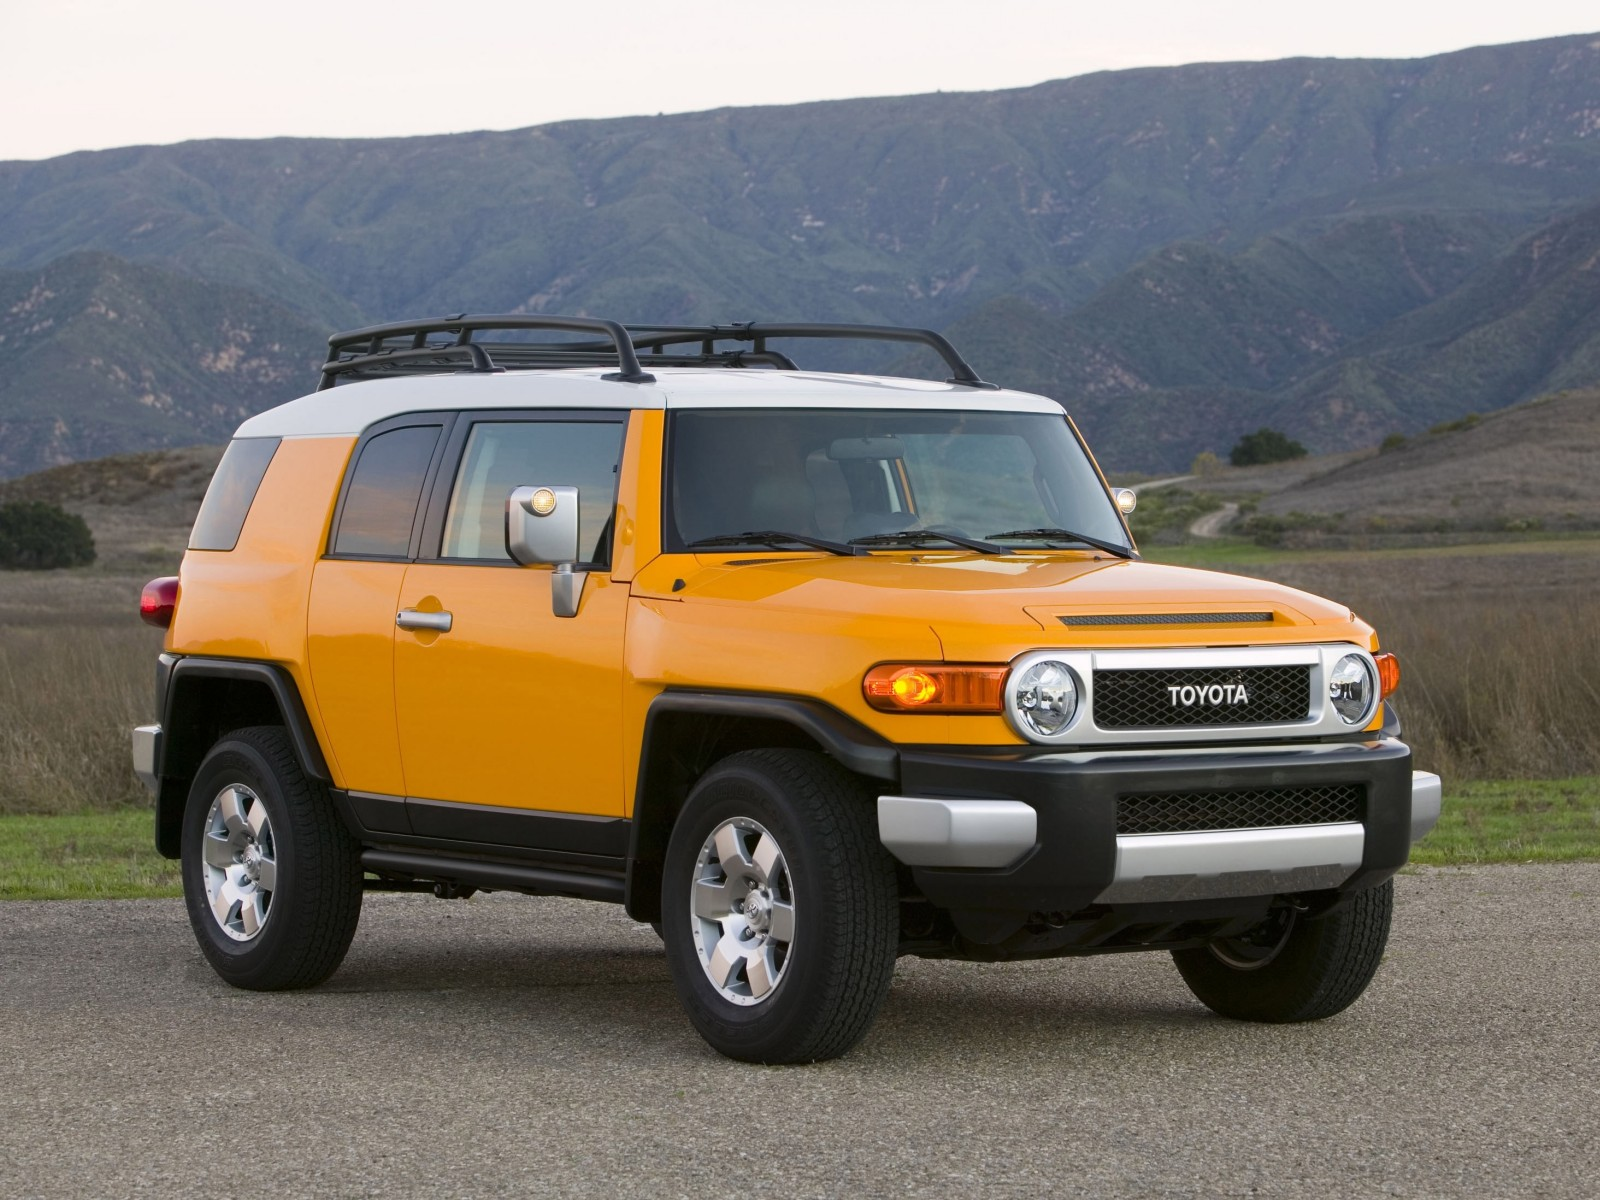 Toyota Fj Cruiser Trailer Wiring Diagram Solutions 2010 Radio 2009 Information And Photos Zombiedrive